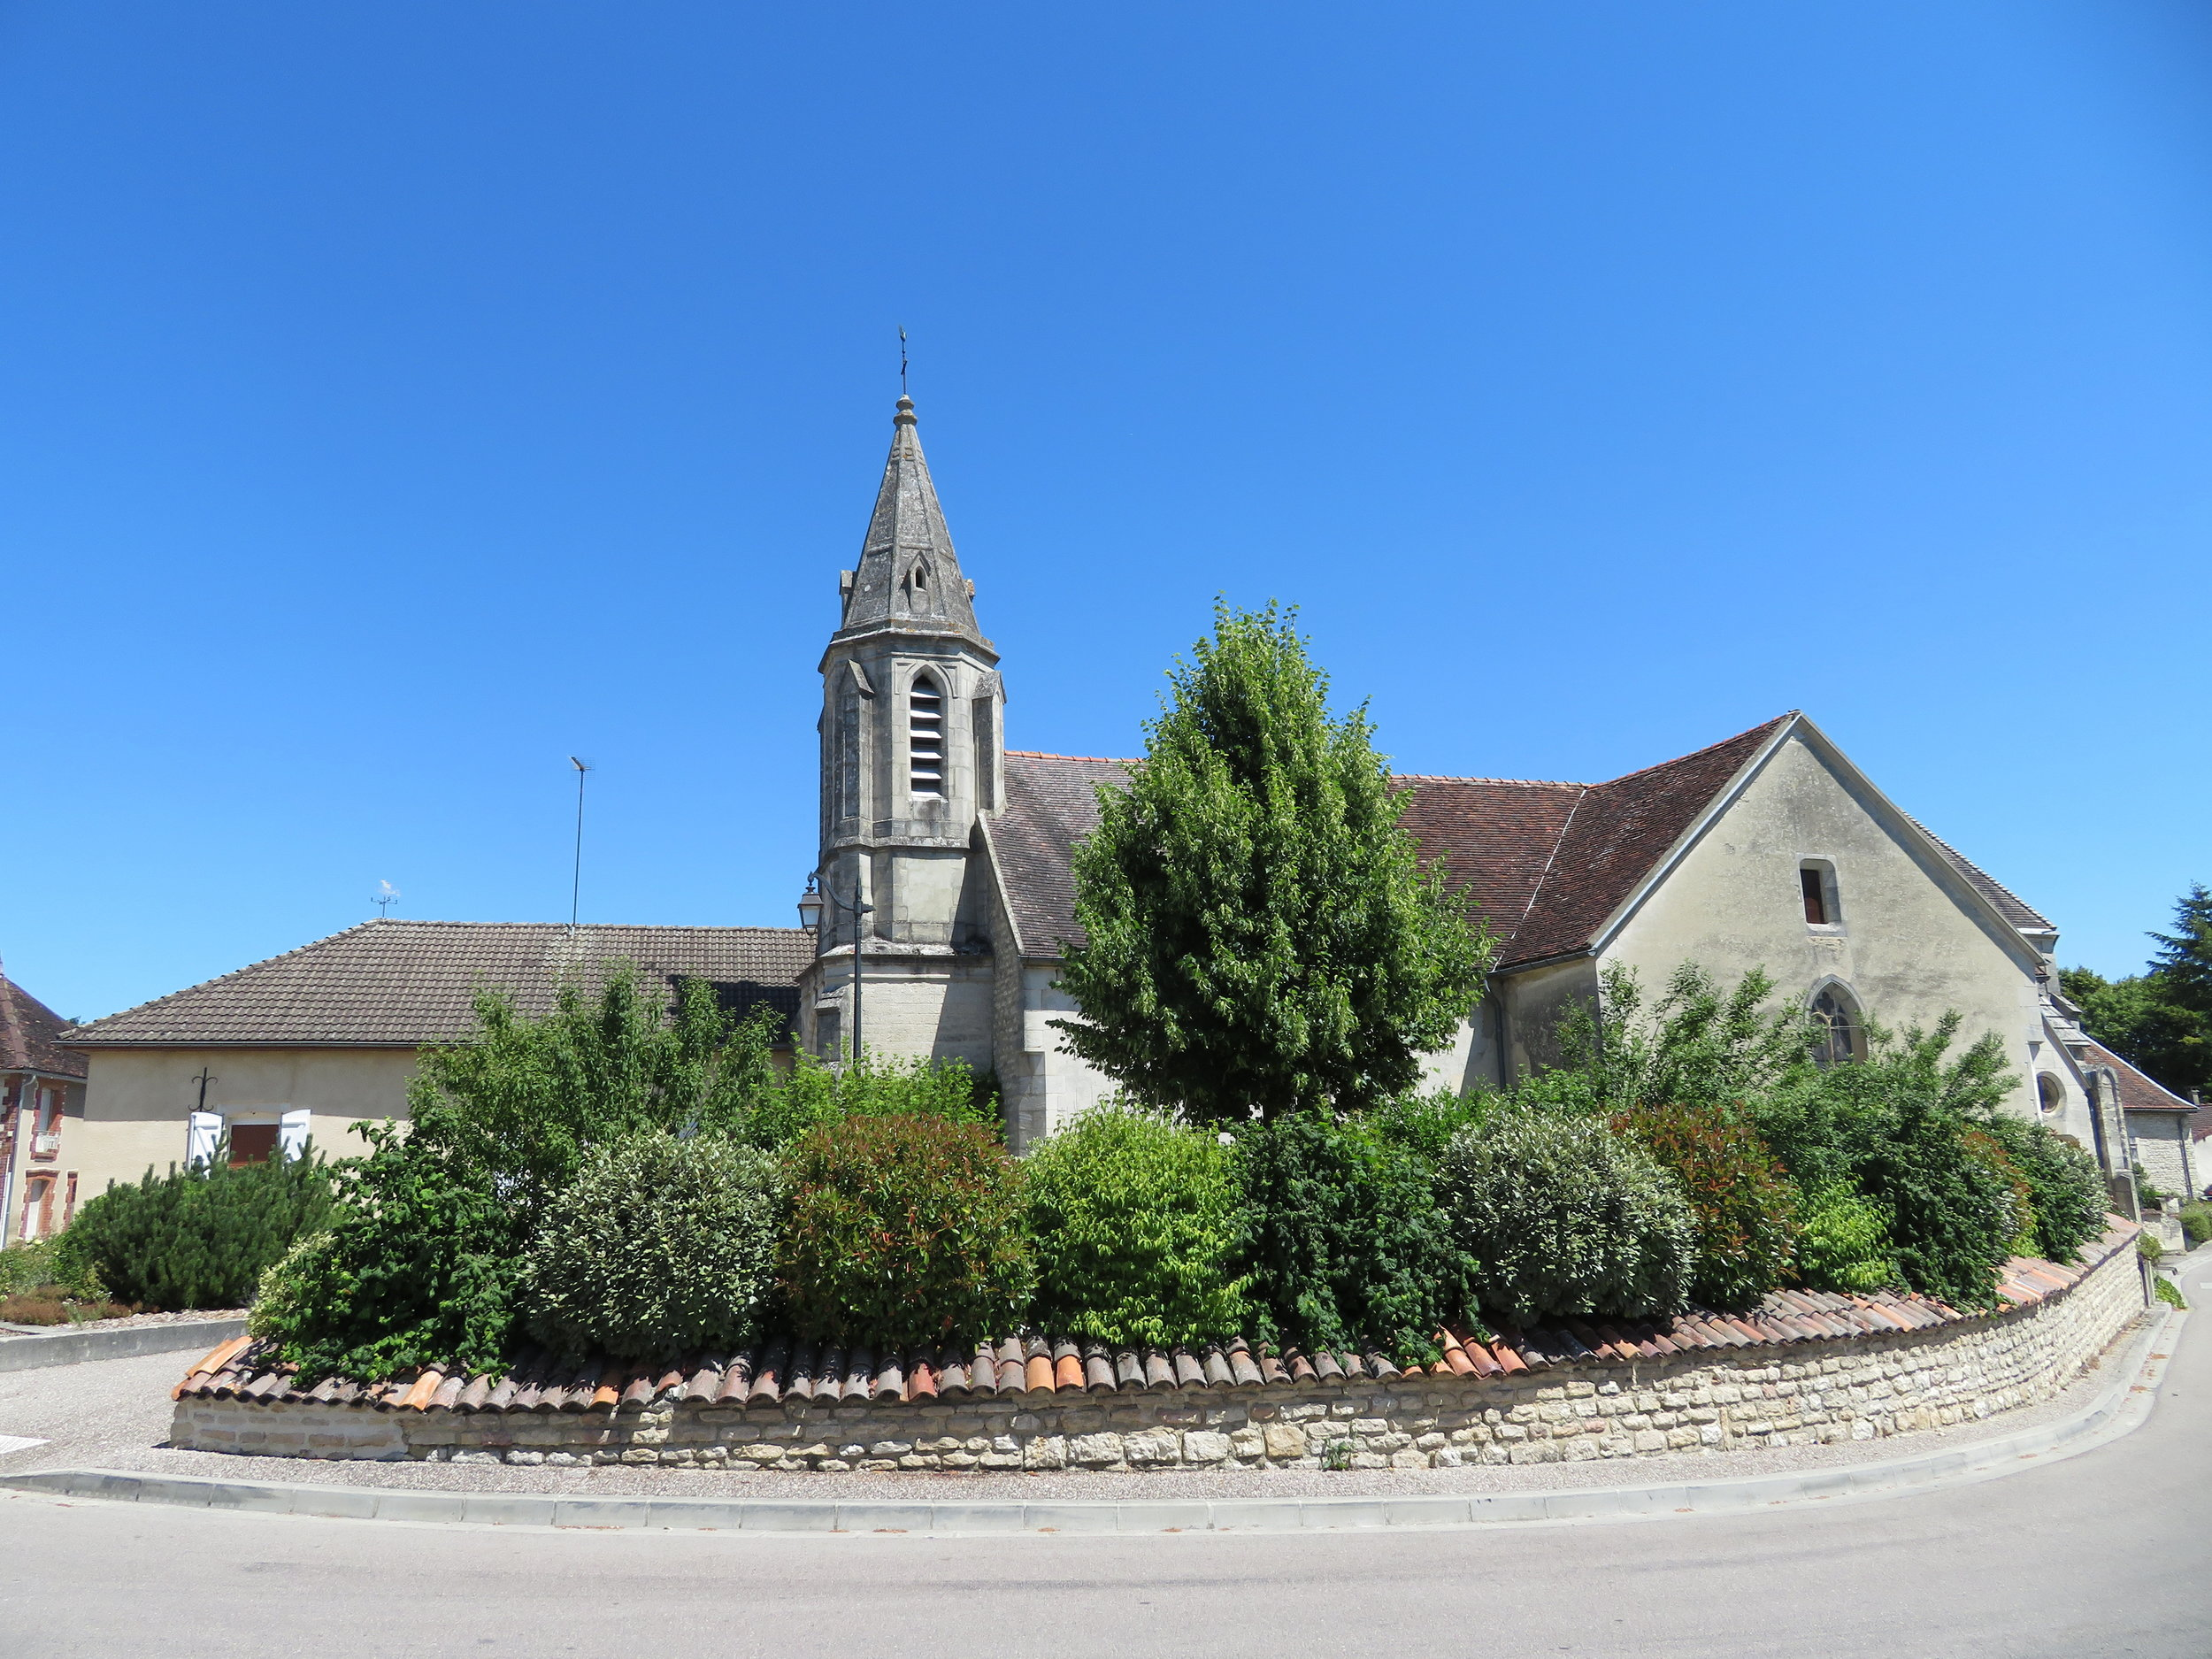 St. Leger Church in Dolancourt dates back to the 12th century.